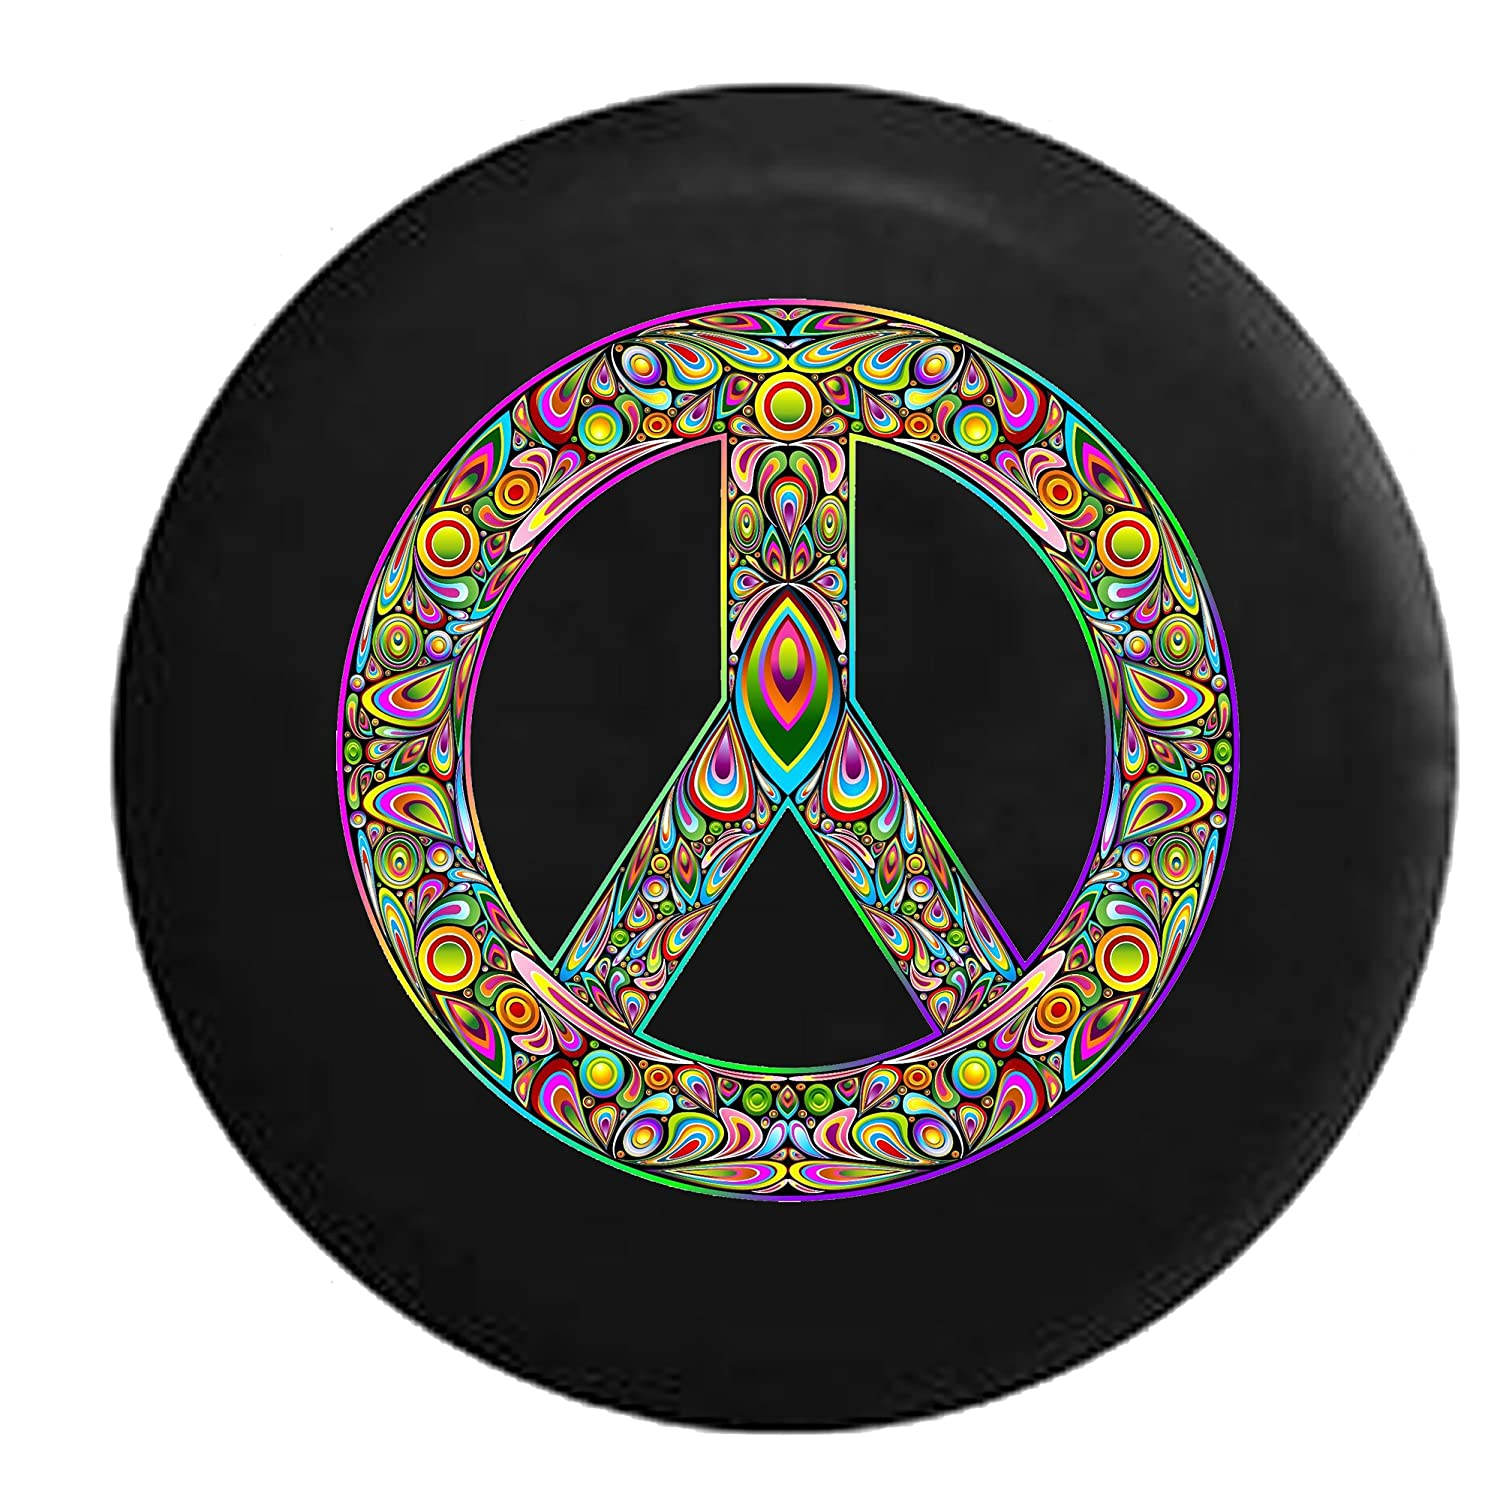 Psycodelic Peace Sign Hippie Lava Lamp Jeep RV Spare Tire Cover Black 33 in Silver Back Covers